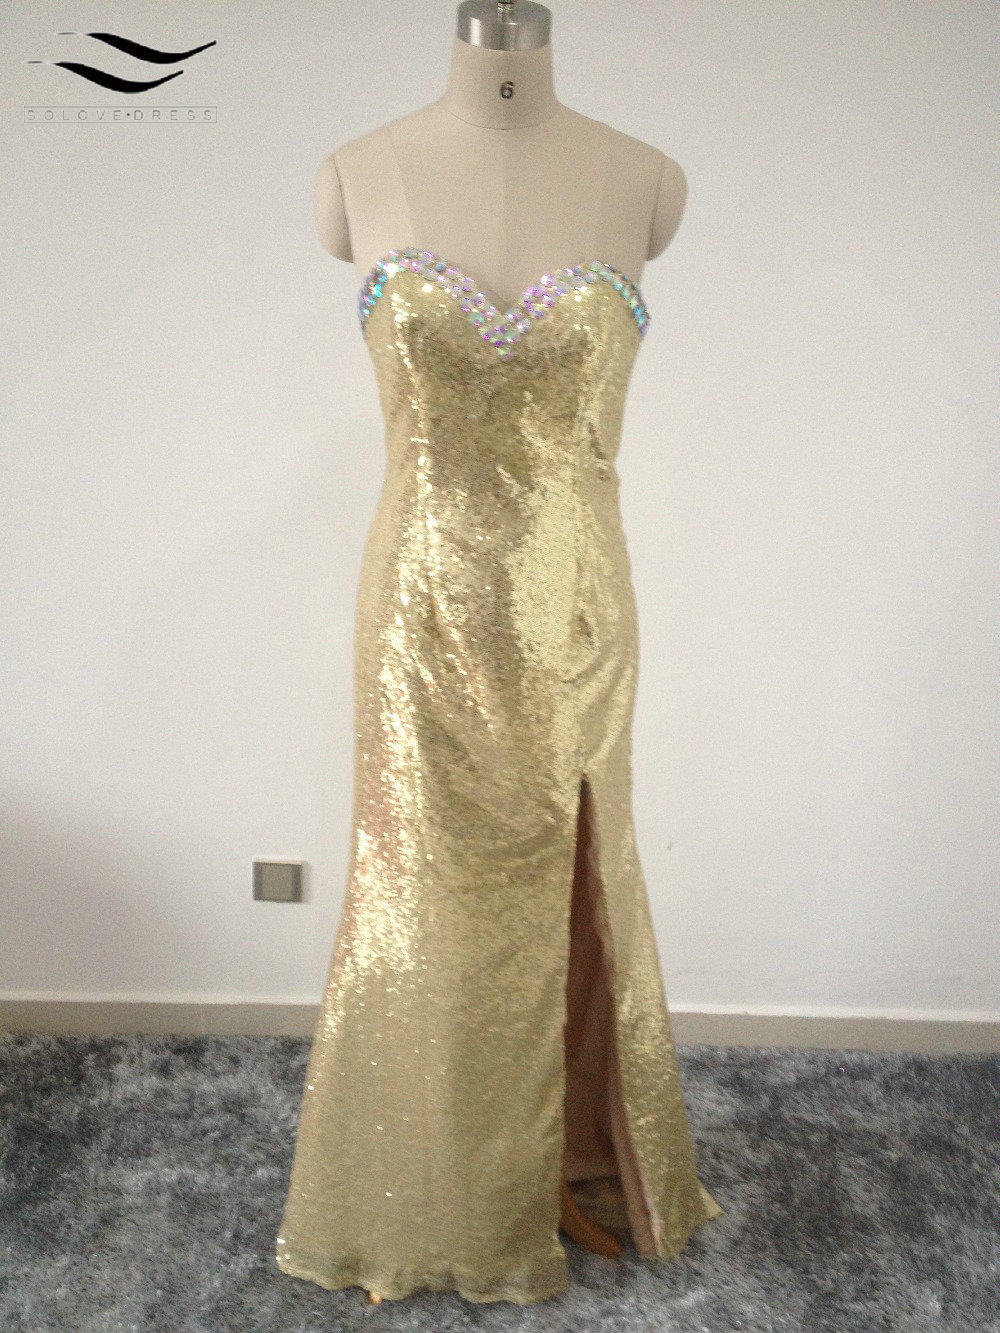 Solovedress Charming Beadeds Sequins Evening Dresses Prom Dress with Trian Stain Mermaid ...